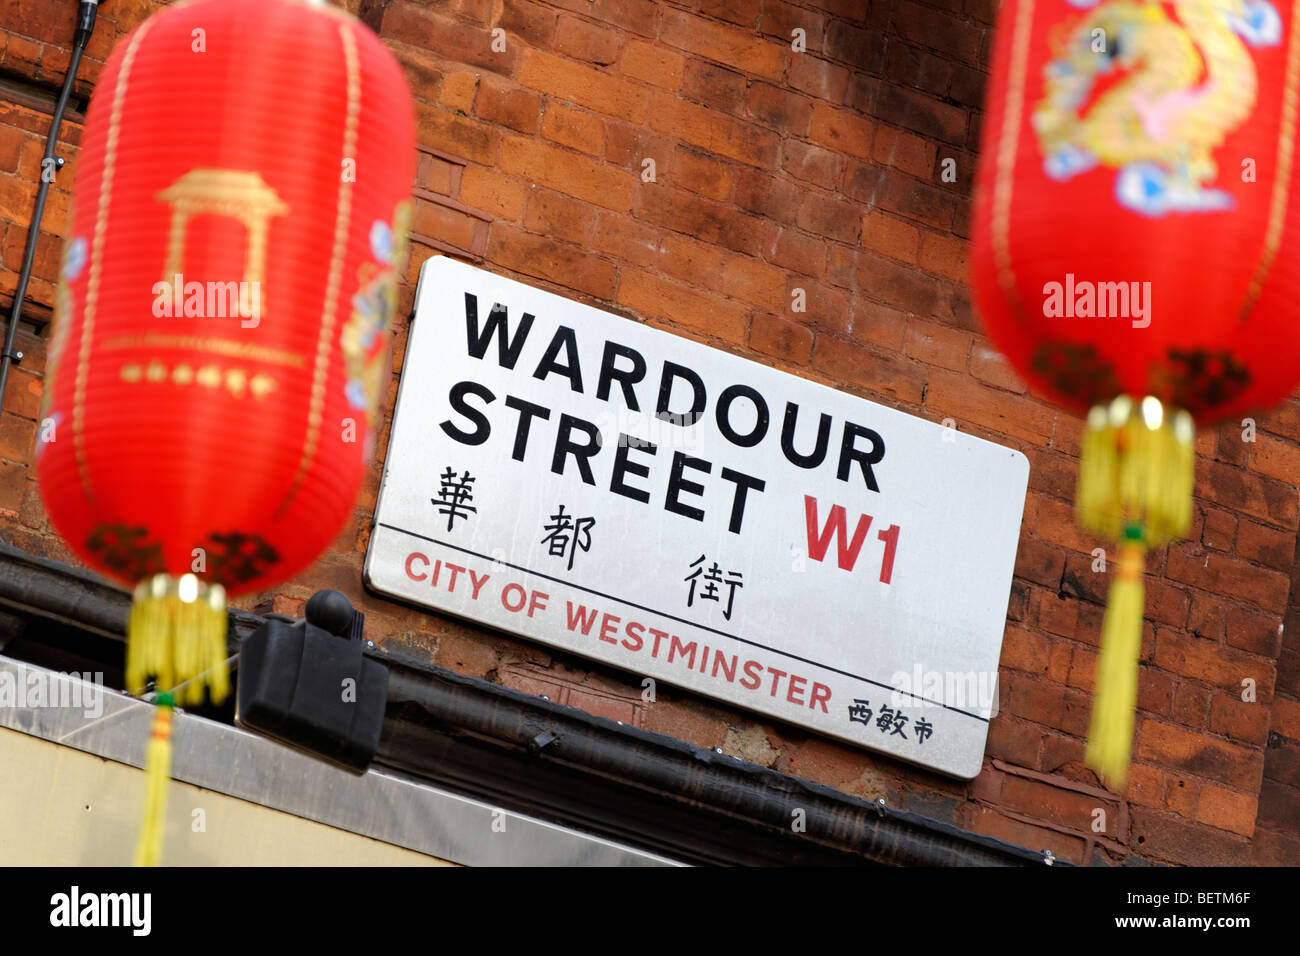 Wardour street. Soho. London. Britain. UK Stock Photo